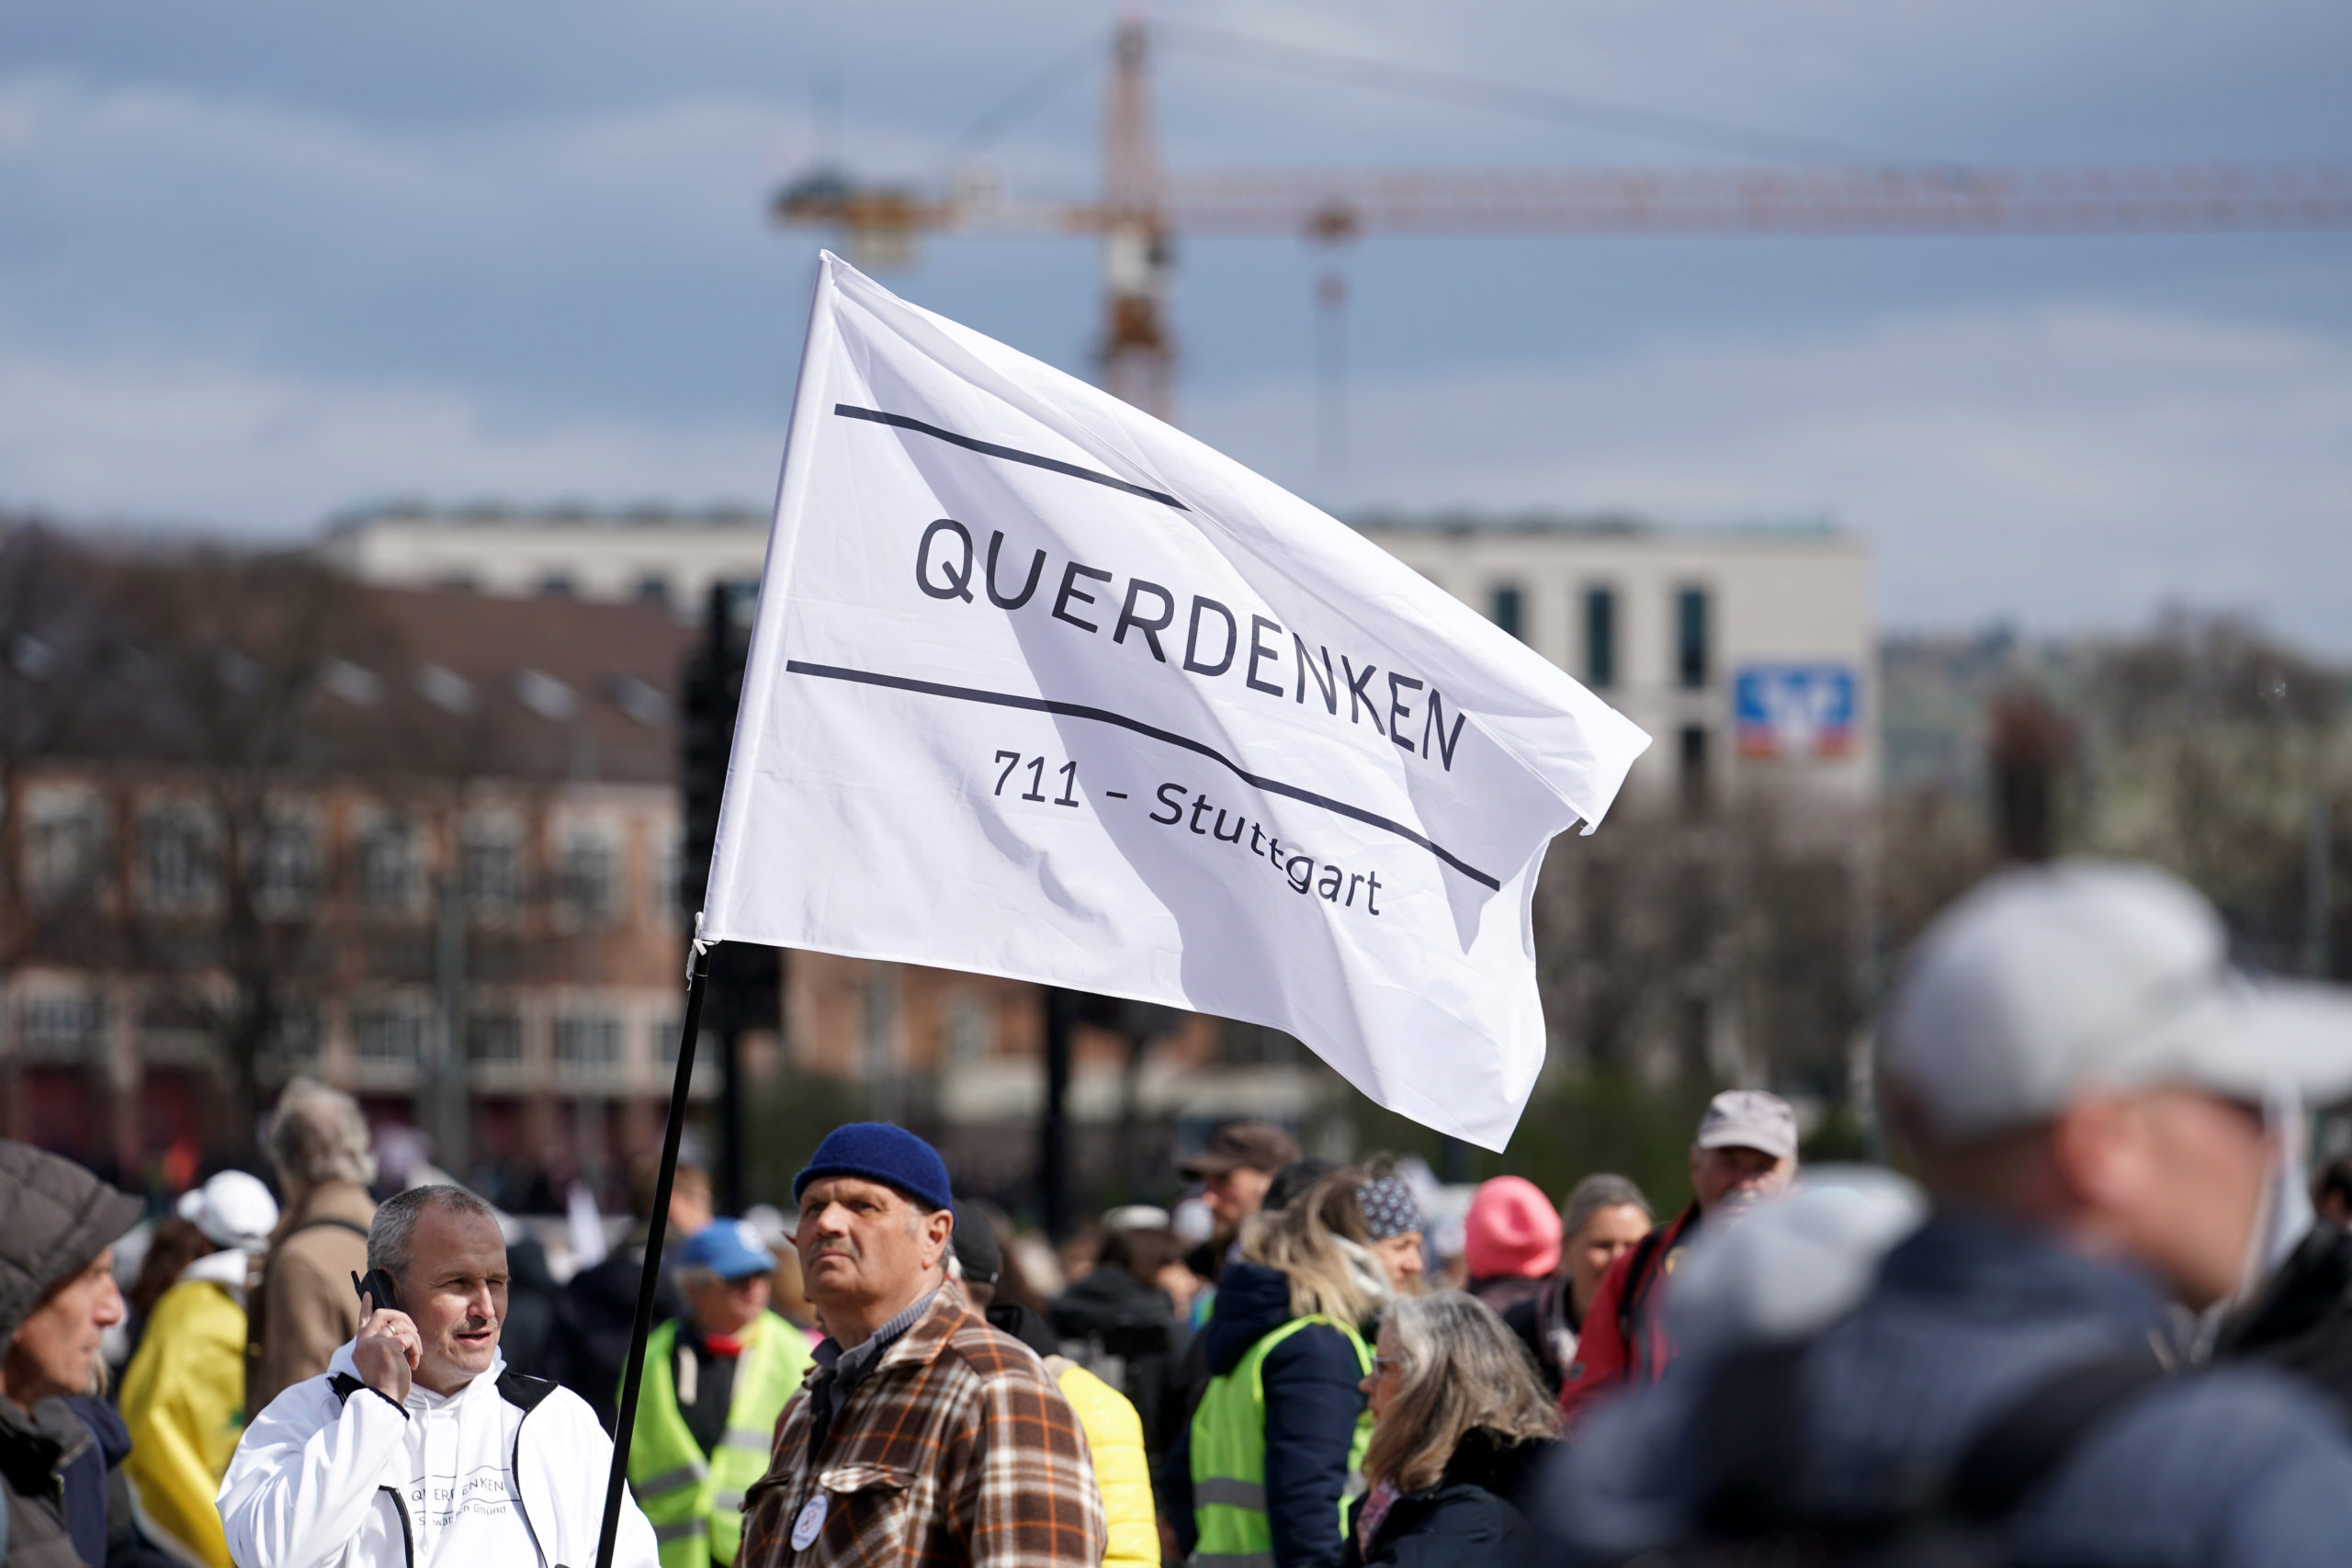 """Supporters of the Querdenken movement march for what they claim are their basic rights during the third wave of the coronavirus pandemic on April 03, 2021 in Stuttgart, Germany. Querdenken, which means """"lateral thinking"""" is Germany's biggest movement that to protest against coronavirus-related lockdown measures. (Photo by Thomas Niedermueller/Getty Images)"""